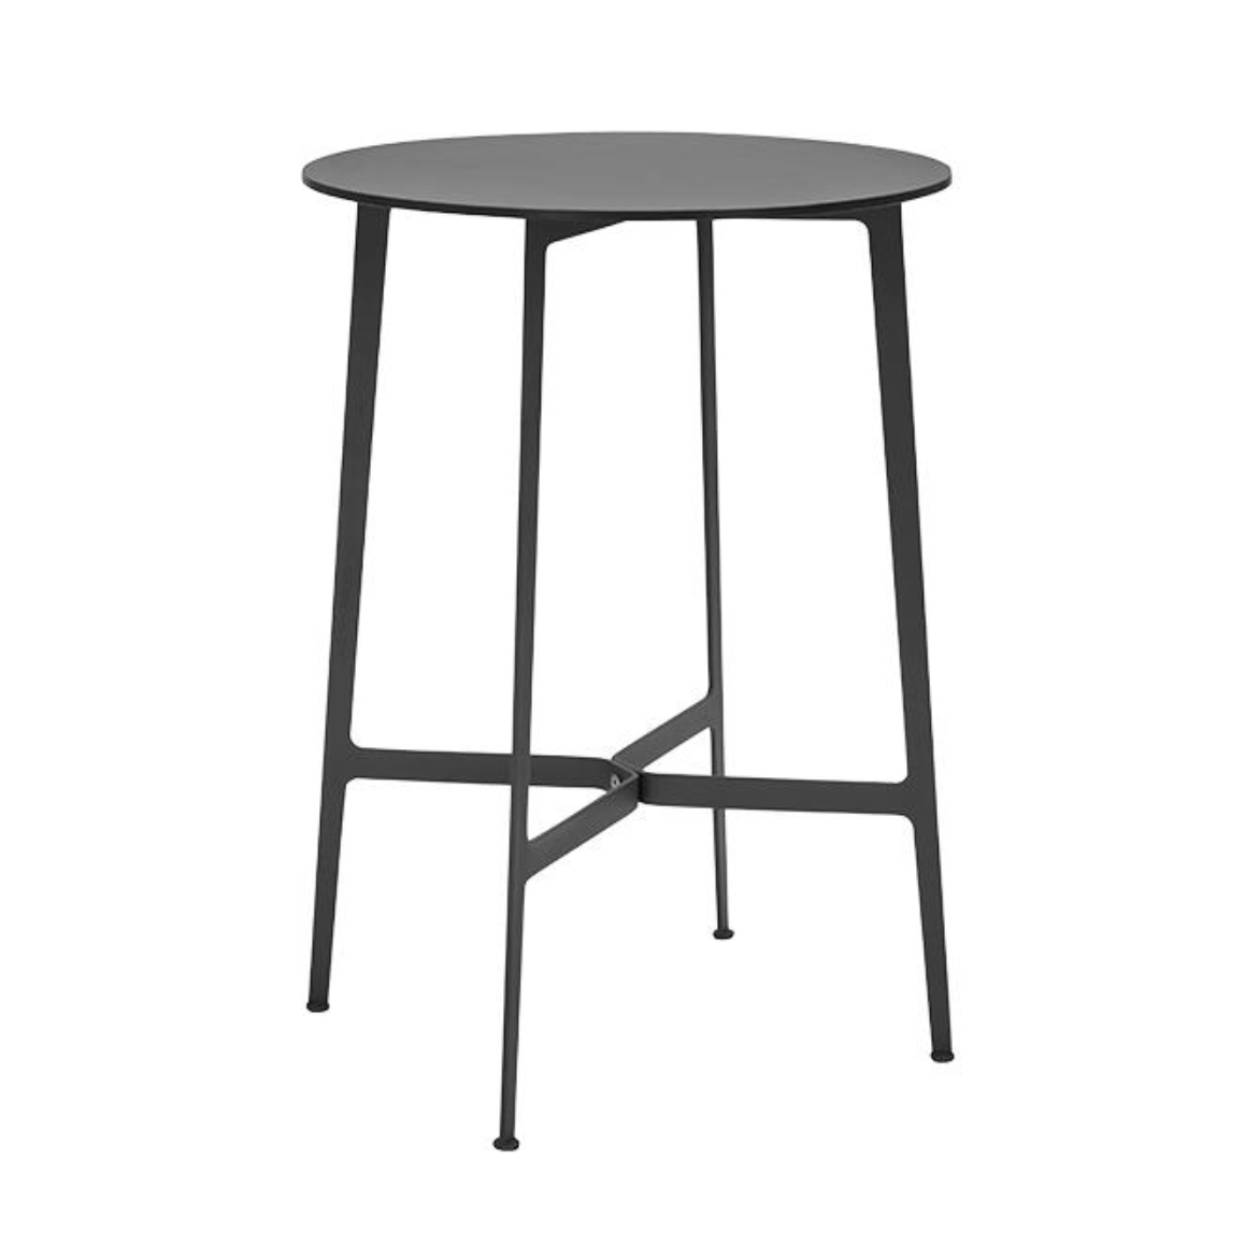 Eileen Circular High Bar Table: Black Frame + Black Laminate